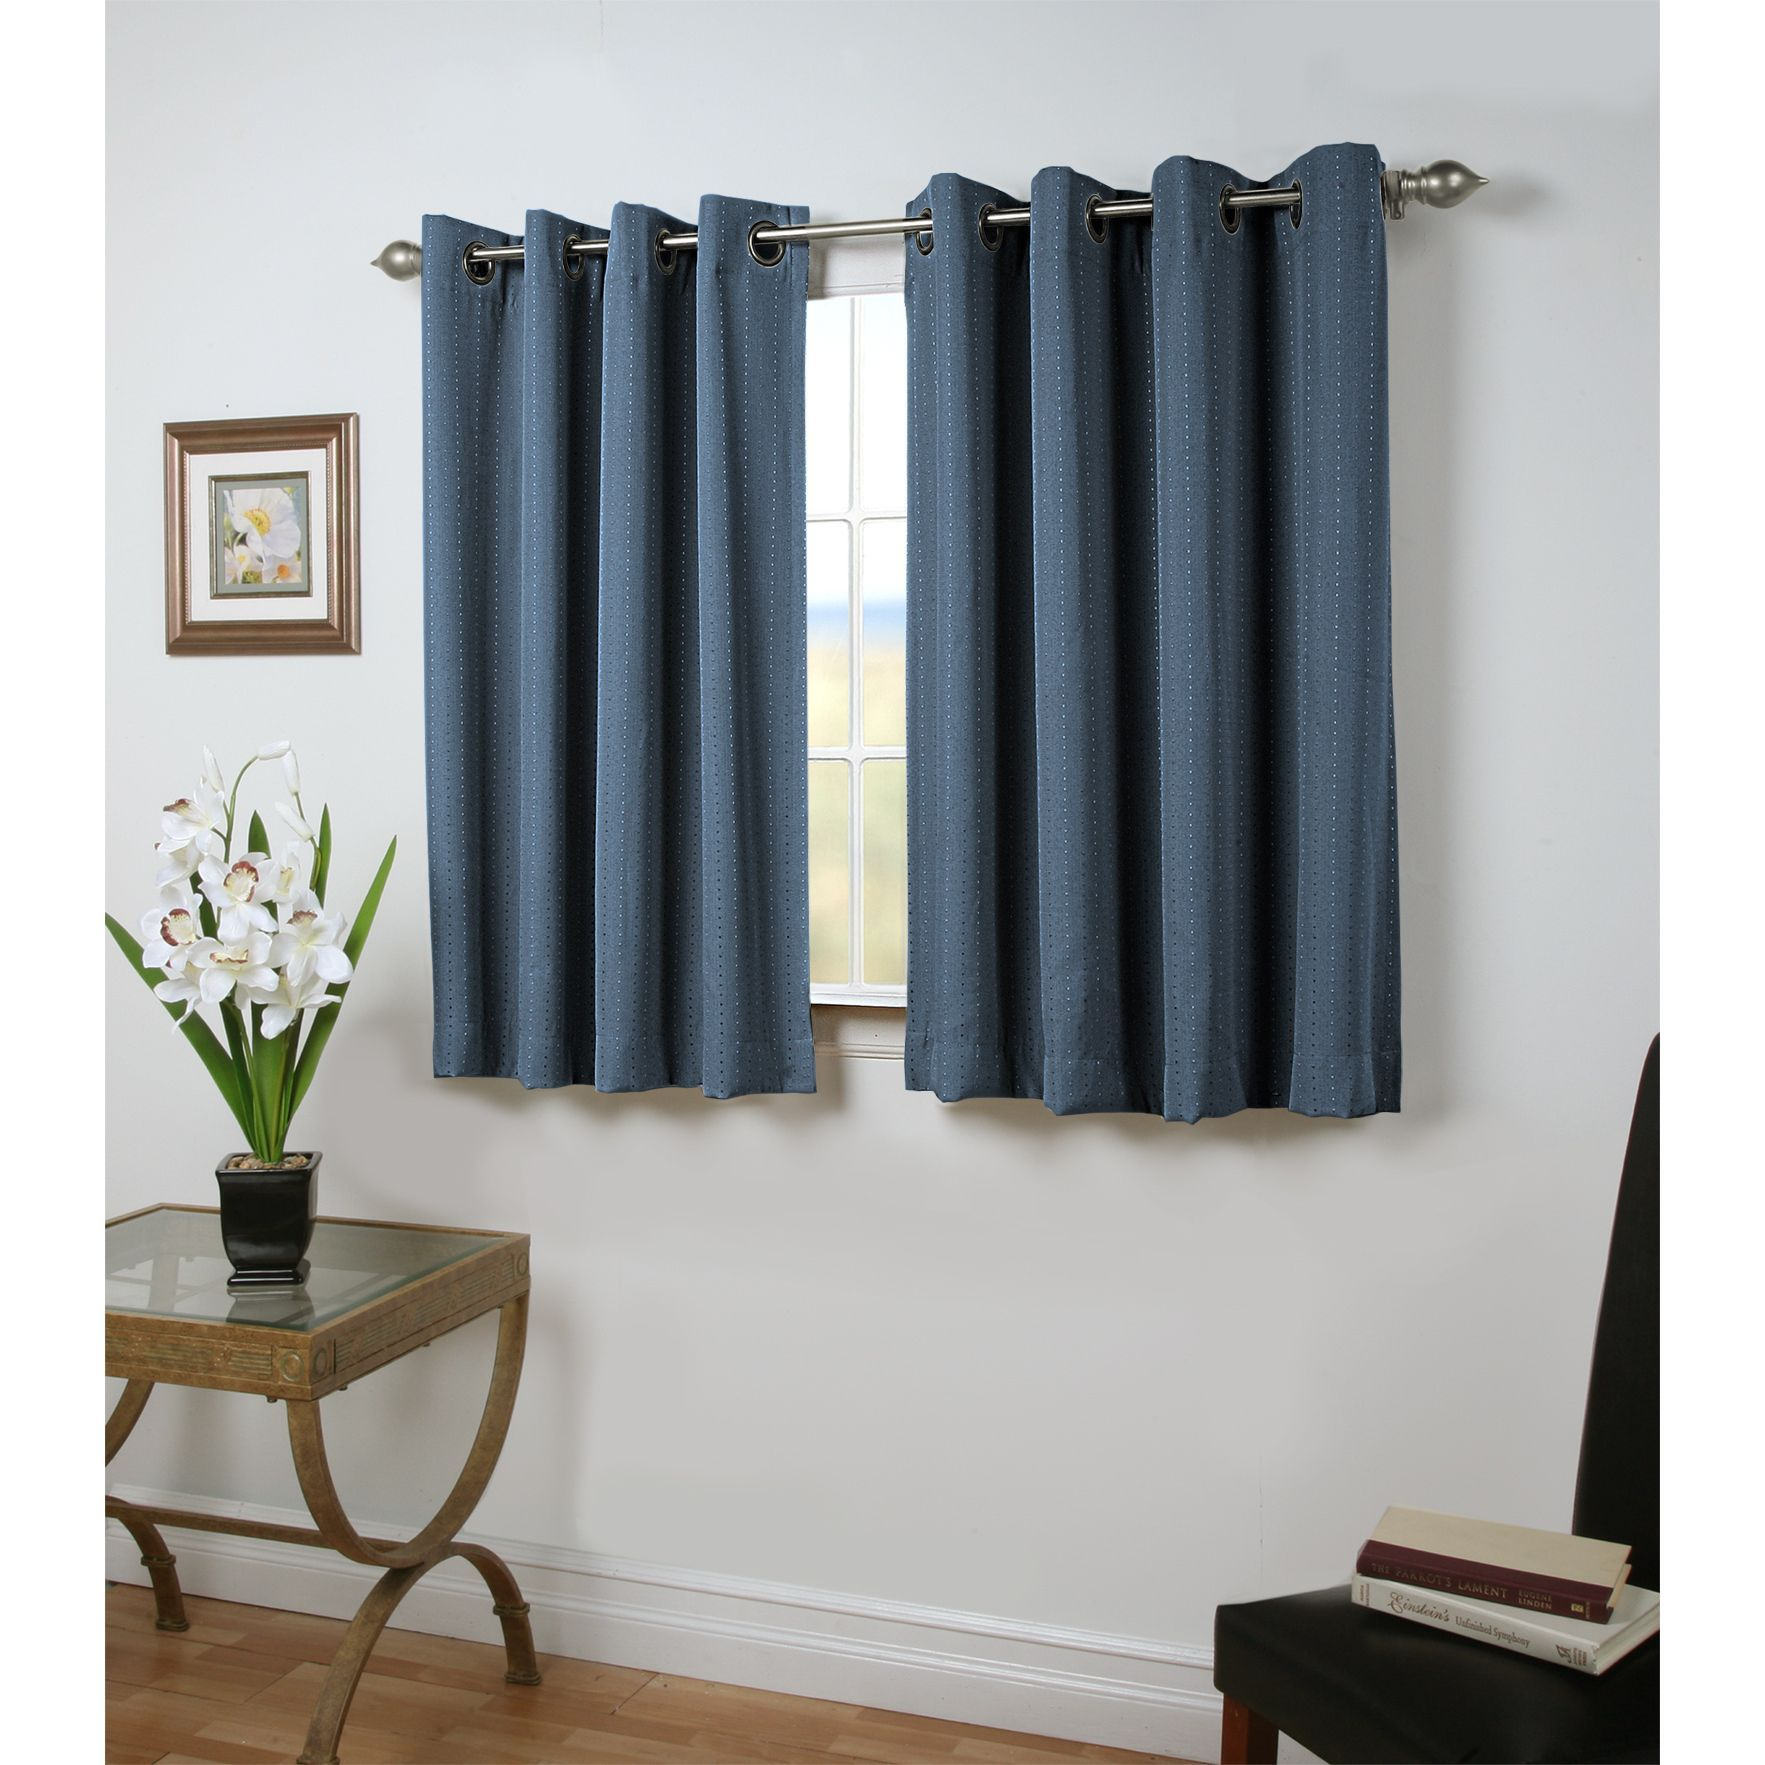 curtains thecurtainshop length curtain surprising long inch ideas